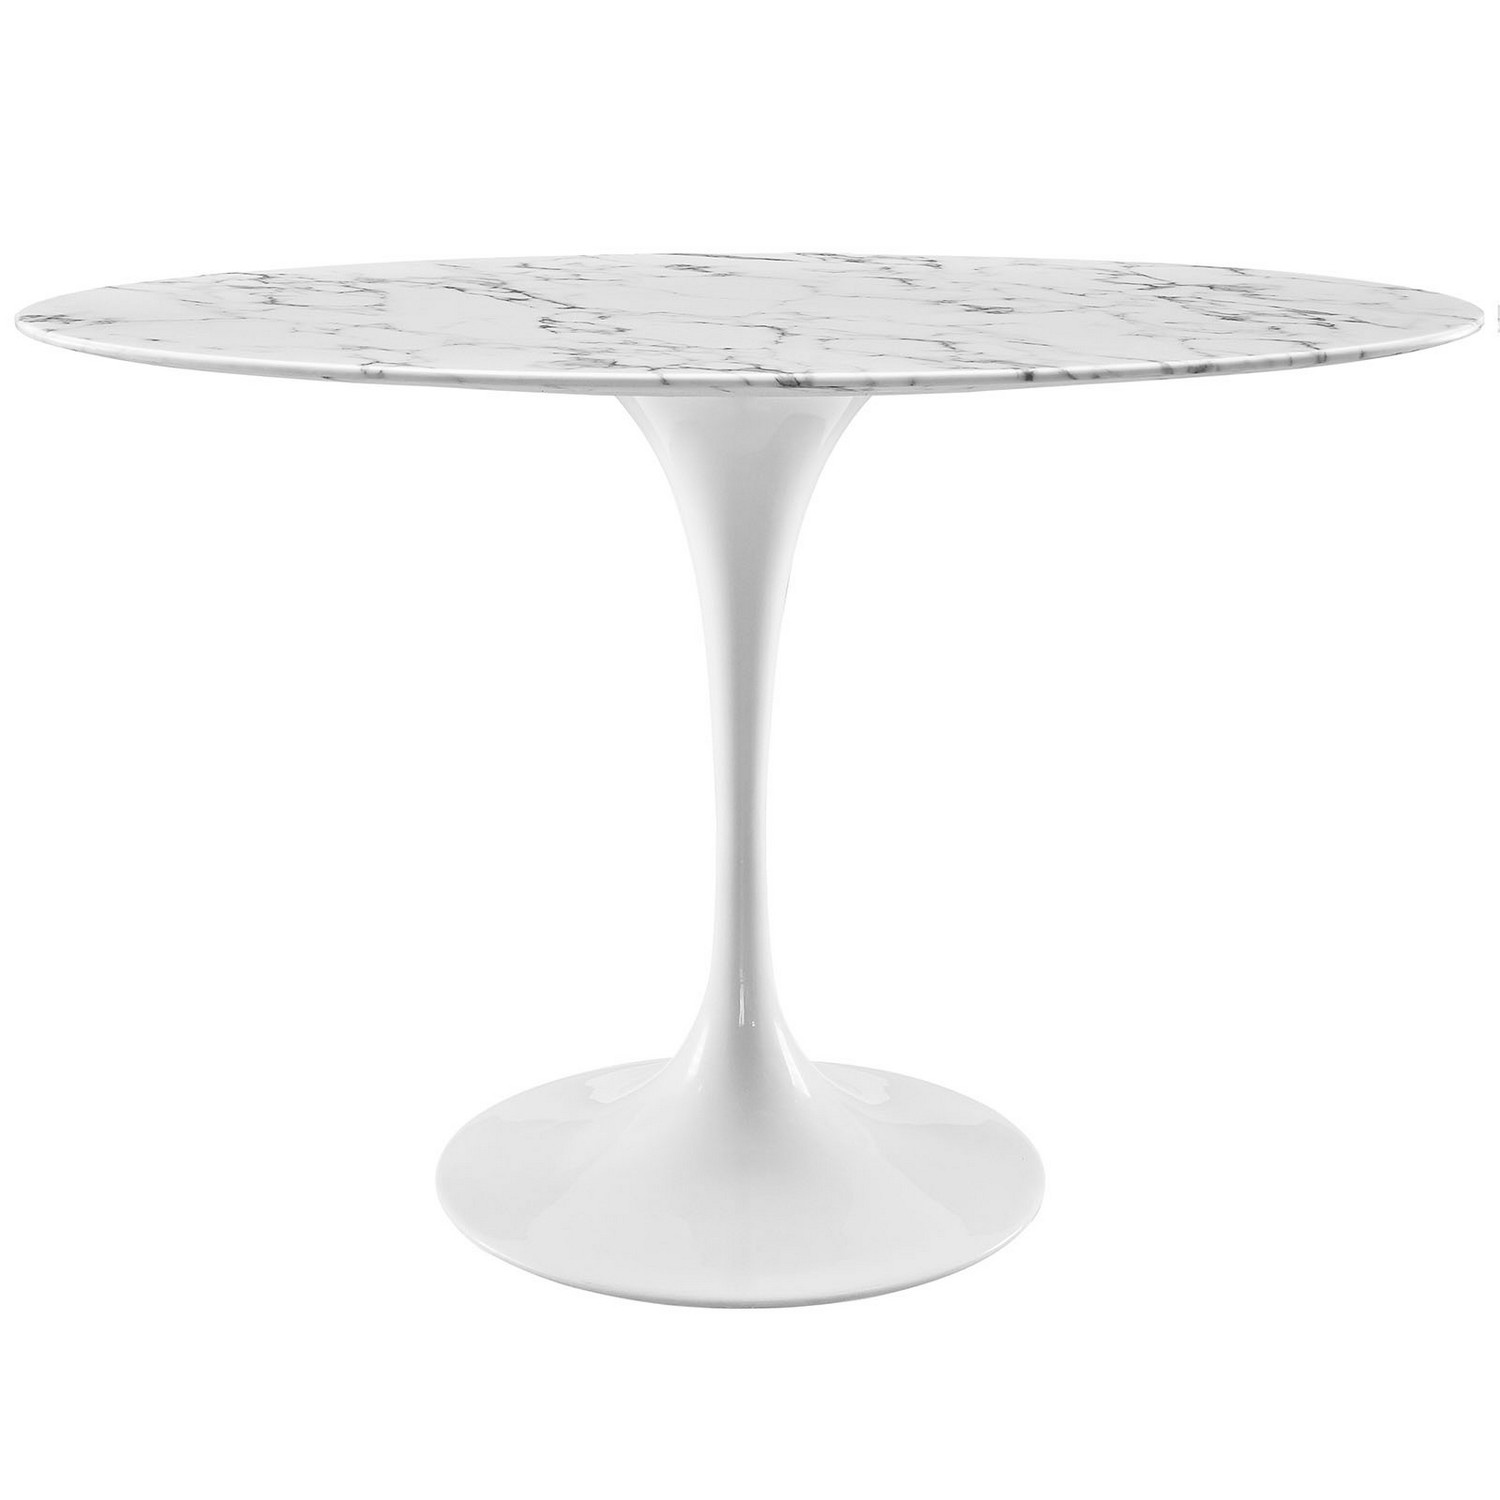 Modway Lippa 48-inch Oval-Shaped Artificial Marble Dining Table - White